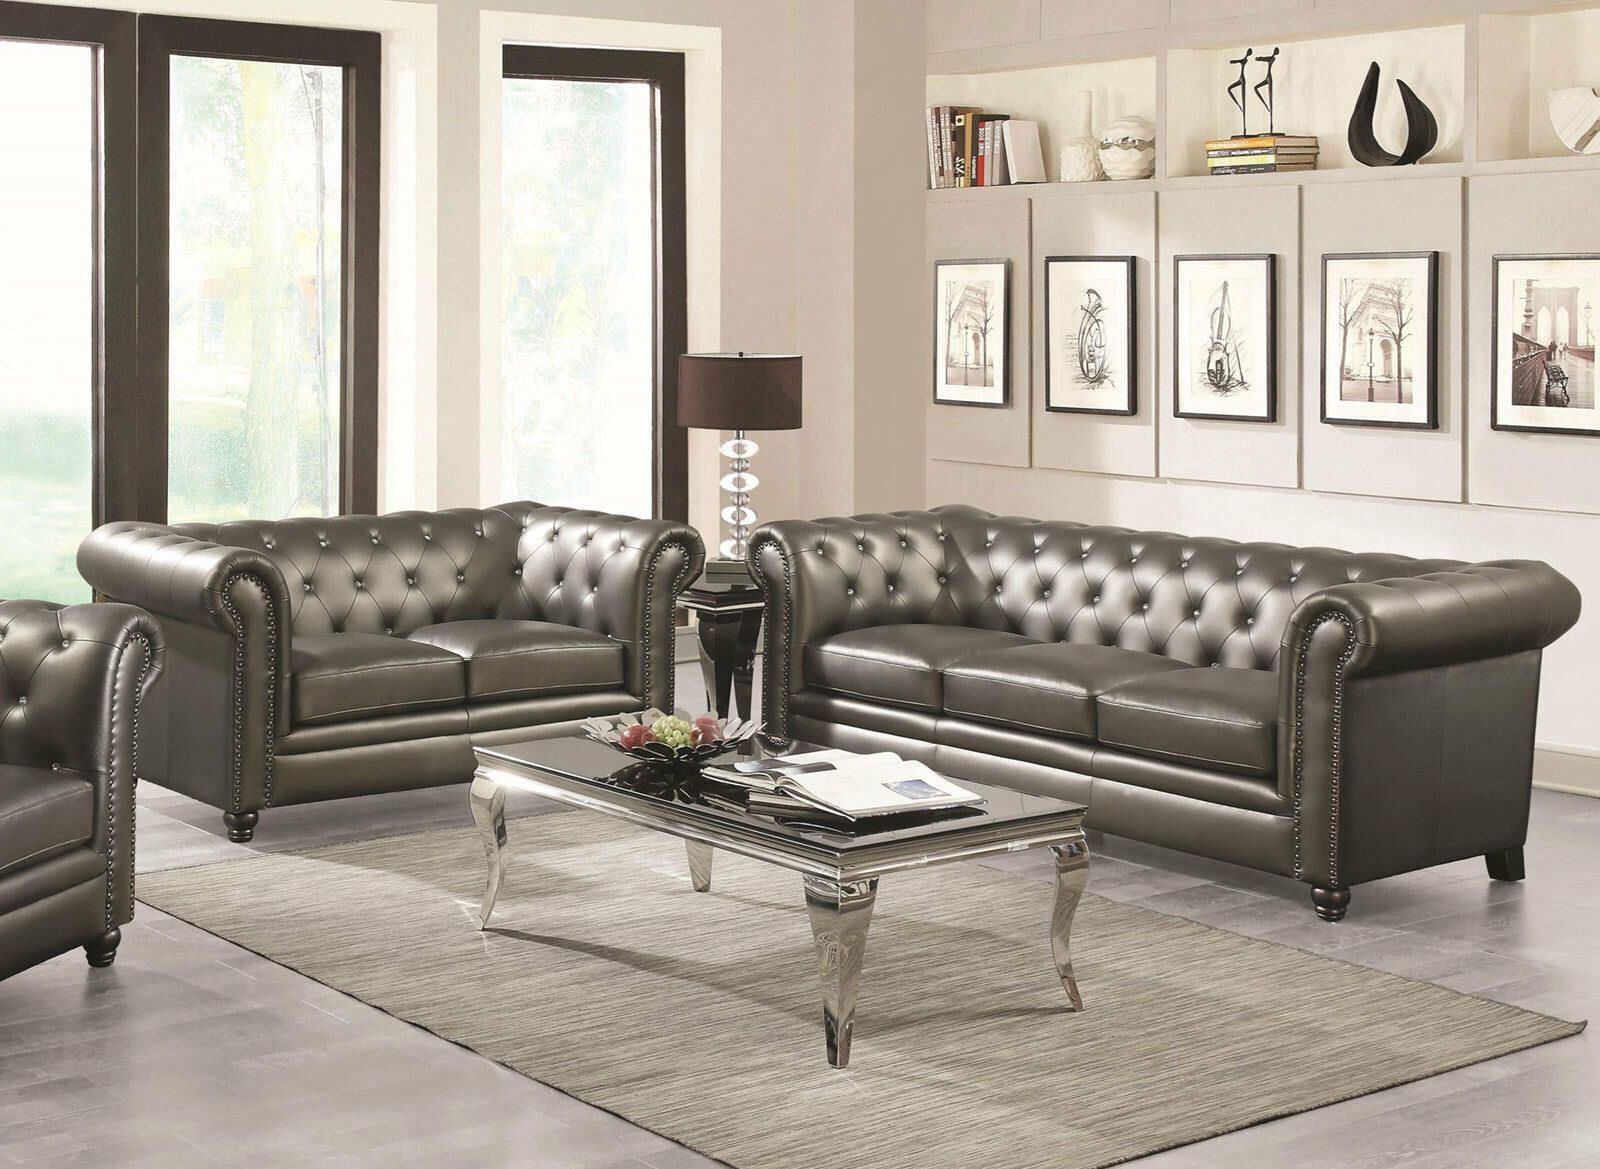 Dark Gray Faux Leather Sofa Loveseat Traditional Design ...